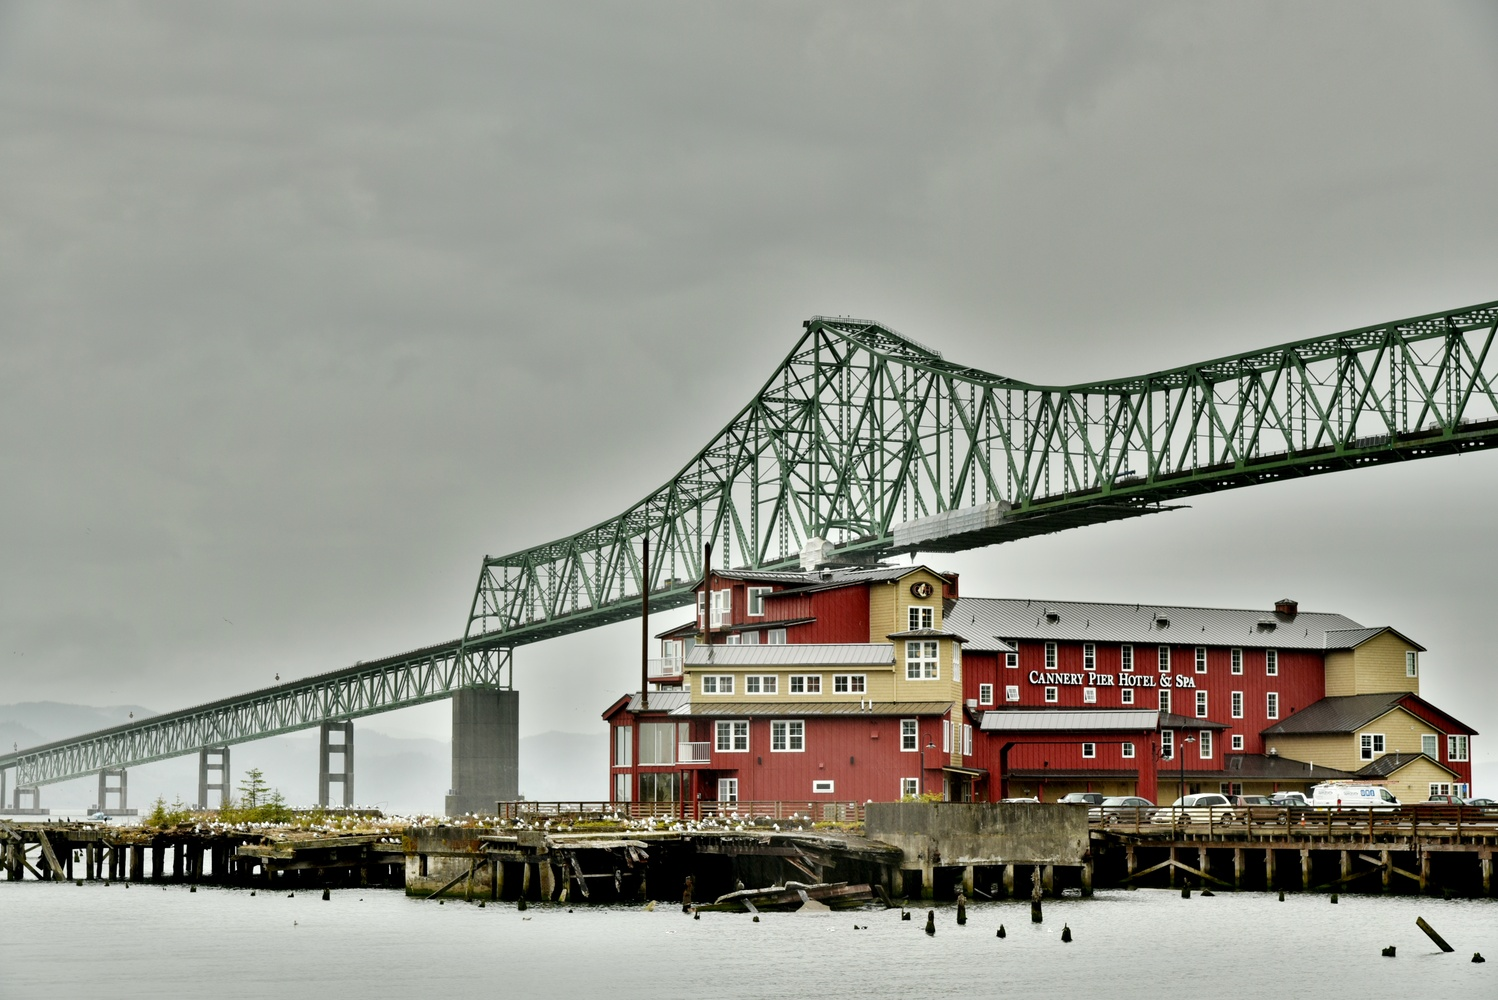 Cannery Pier Hotel and Spa, Astoria, Oregon by Michael O